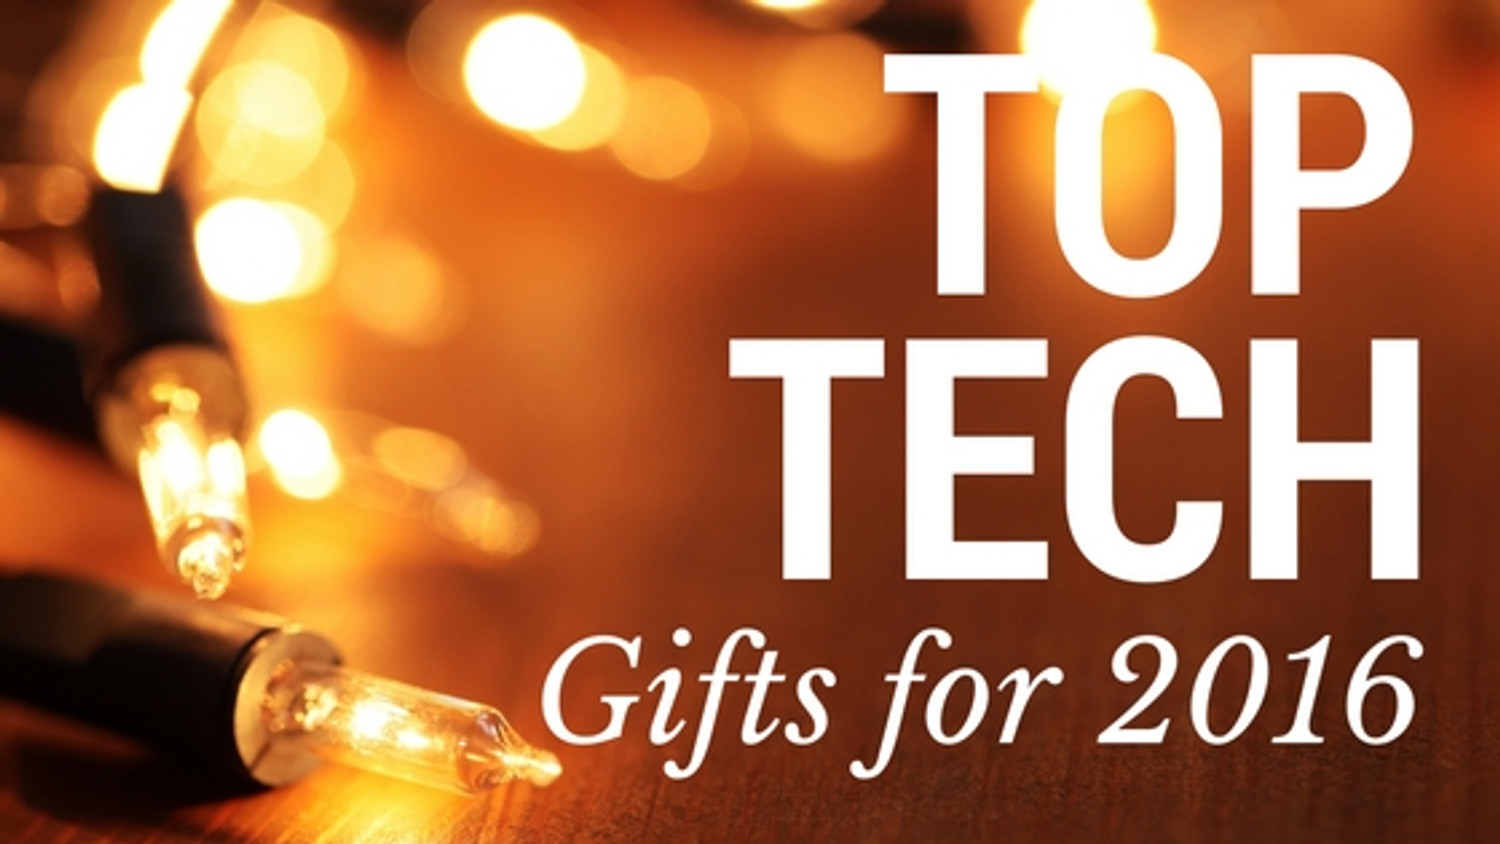 Top Holiday Tech Gifts 2016